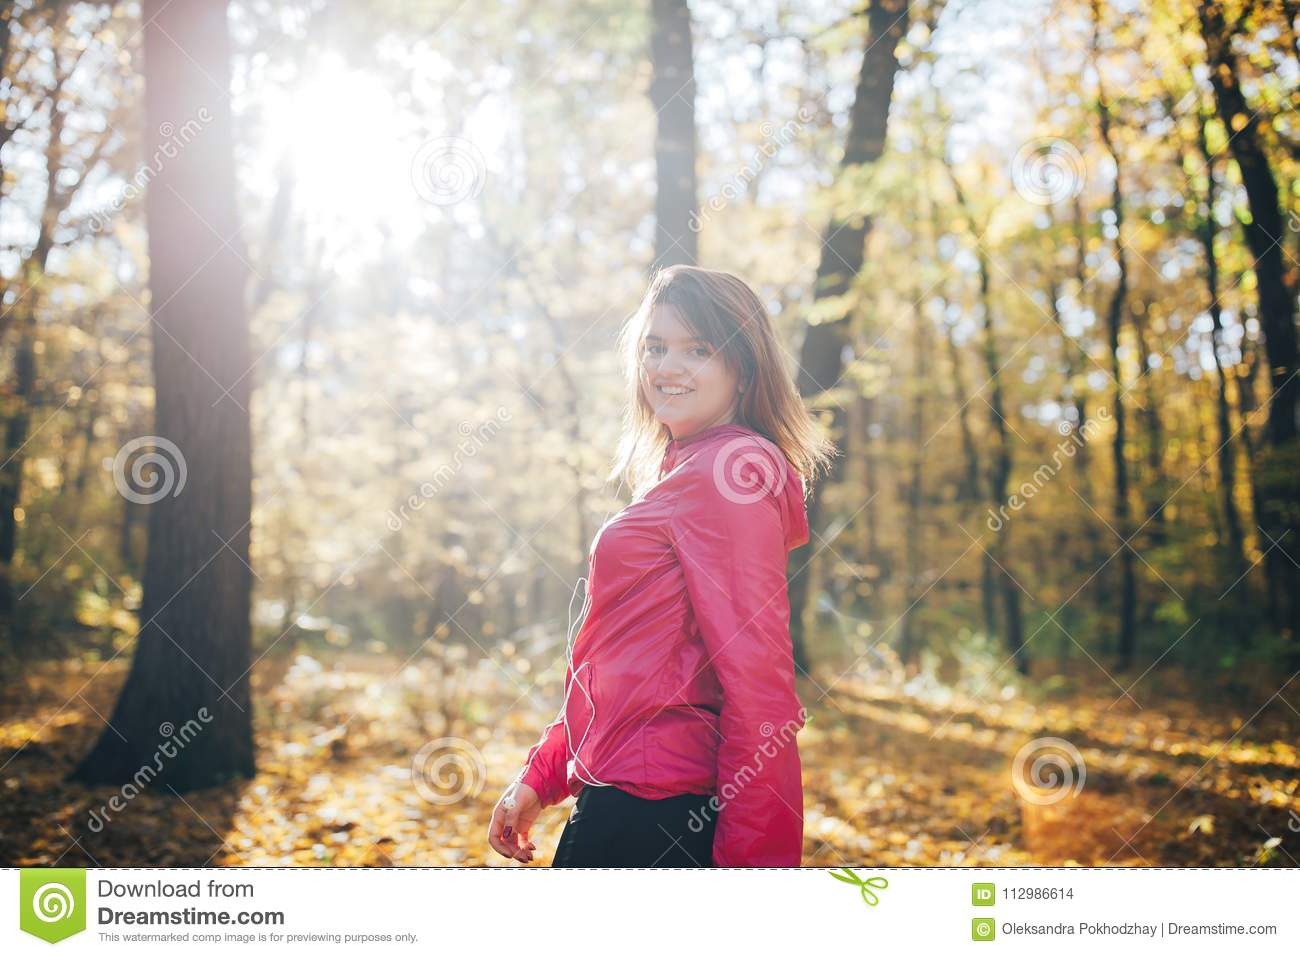 Woman trains in the morning autumn forest. Good morning light.